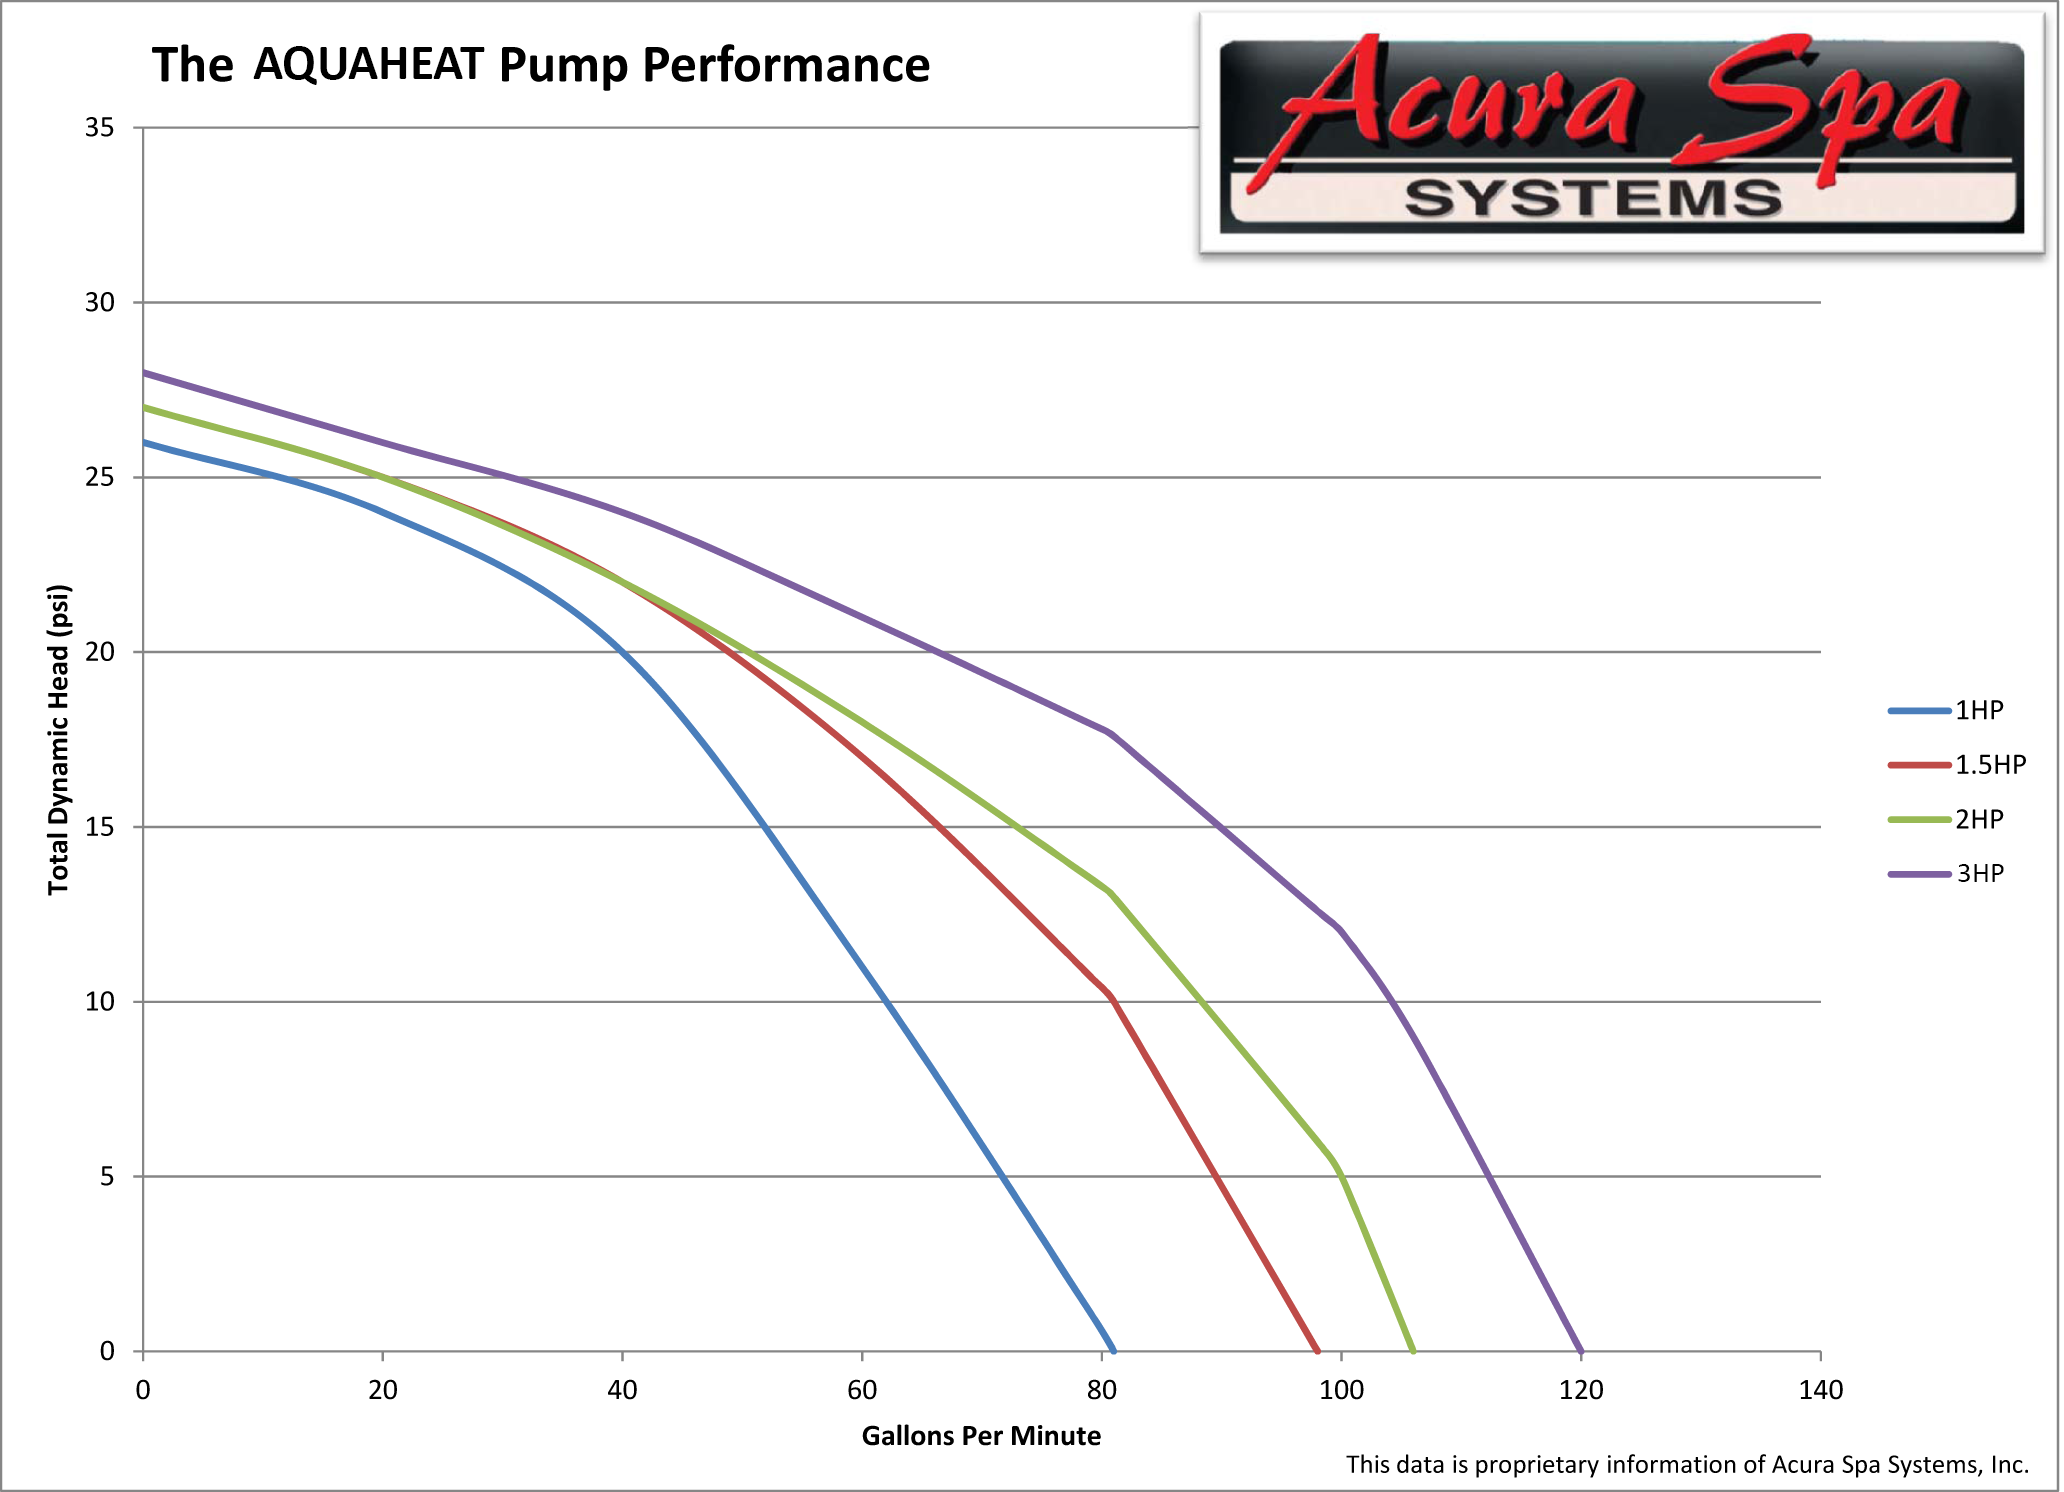 Aquaheat Performance Data